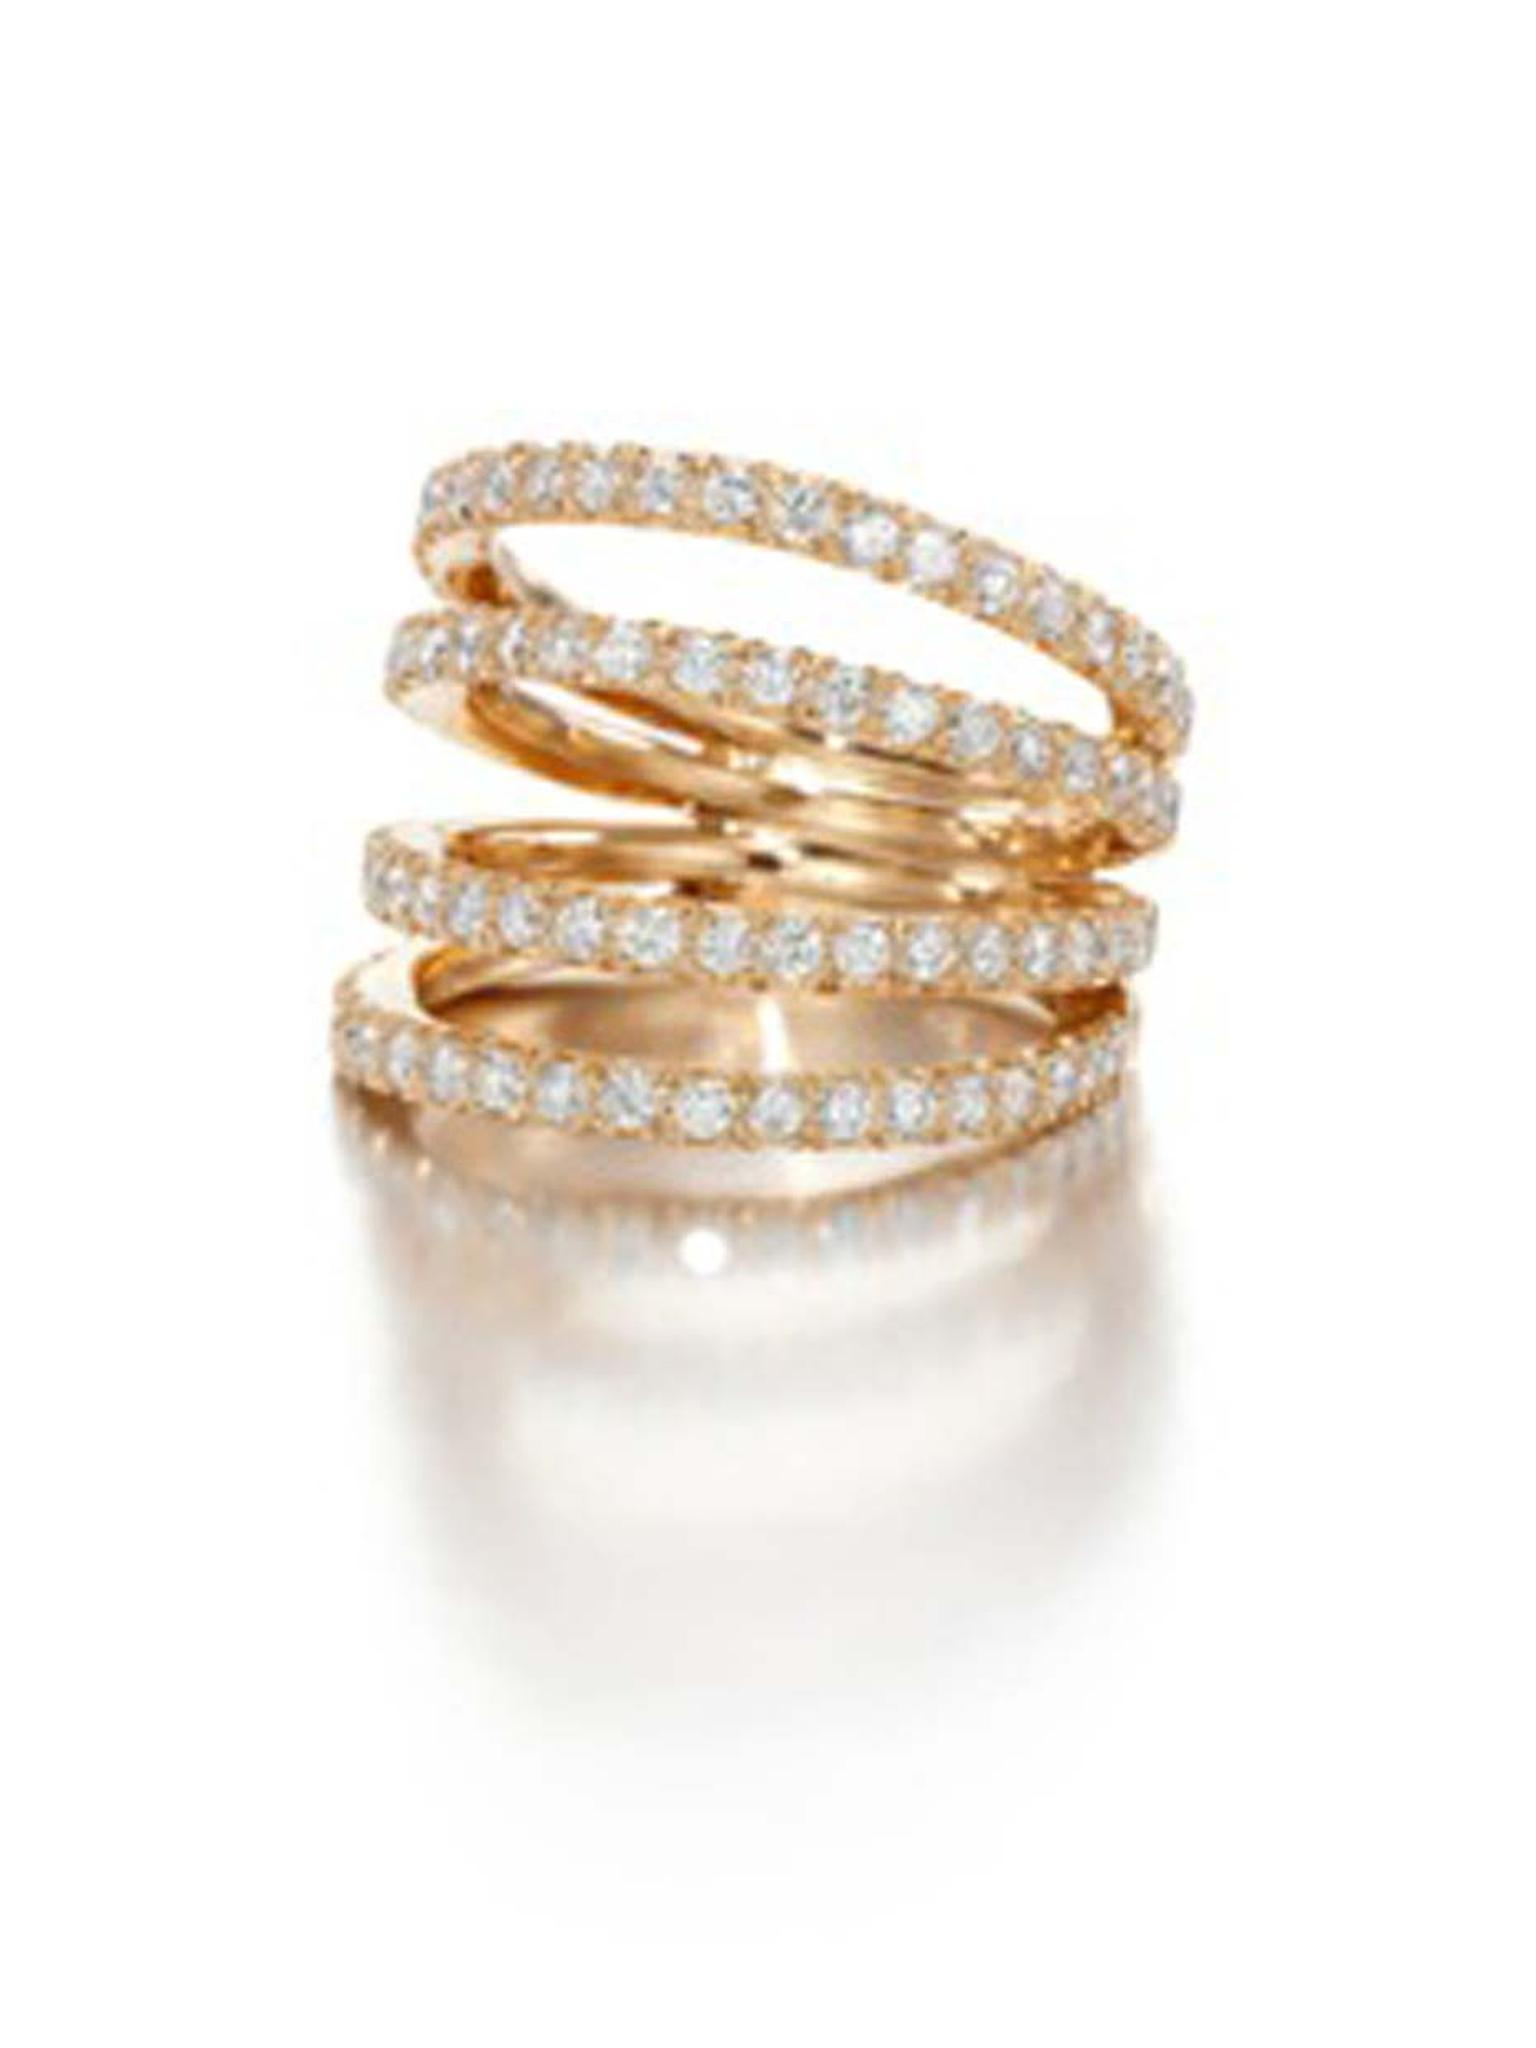 Jessica McCormack silver and rose gold Four Split Band diamond ring featuring 80 brilliant-cut diamonds